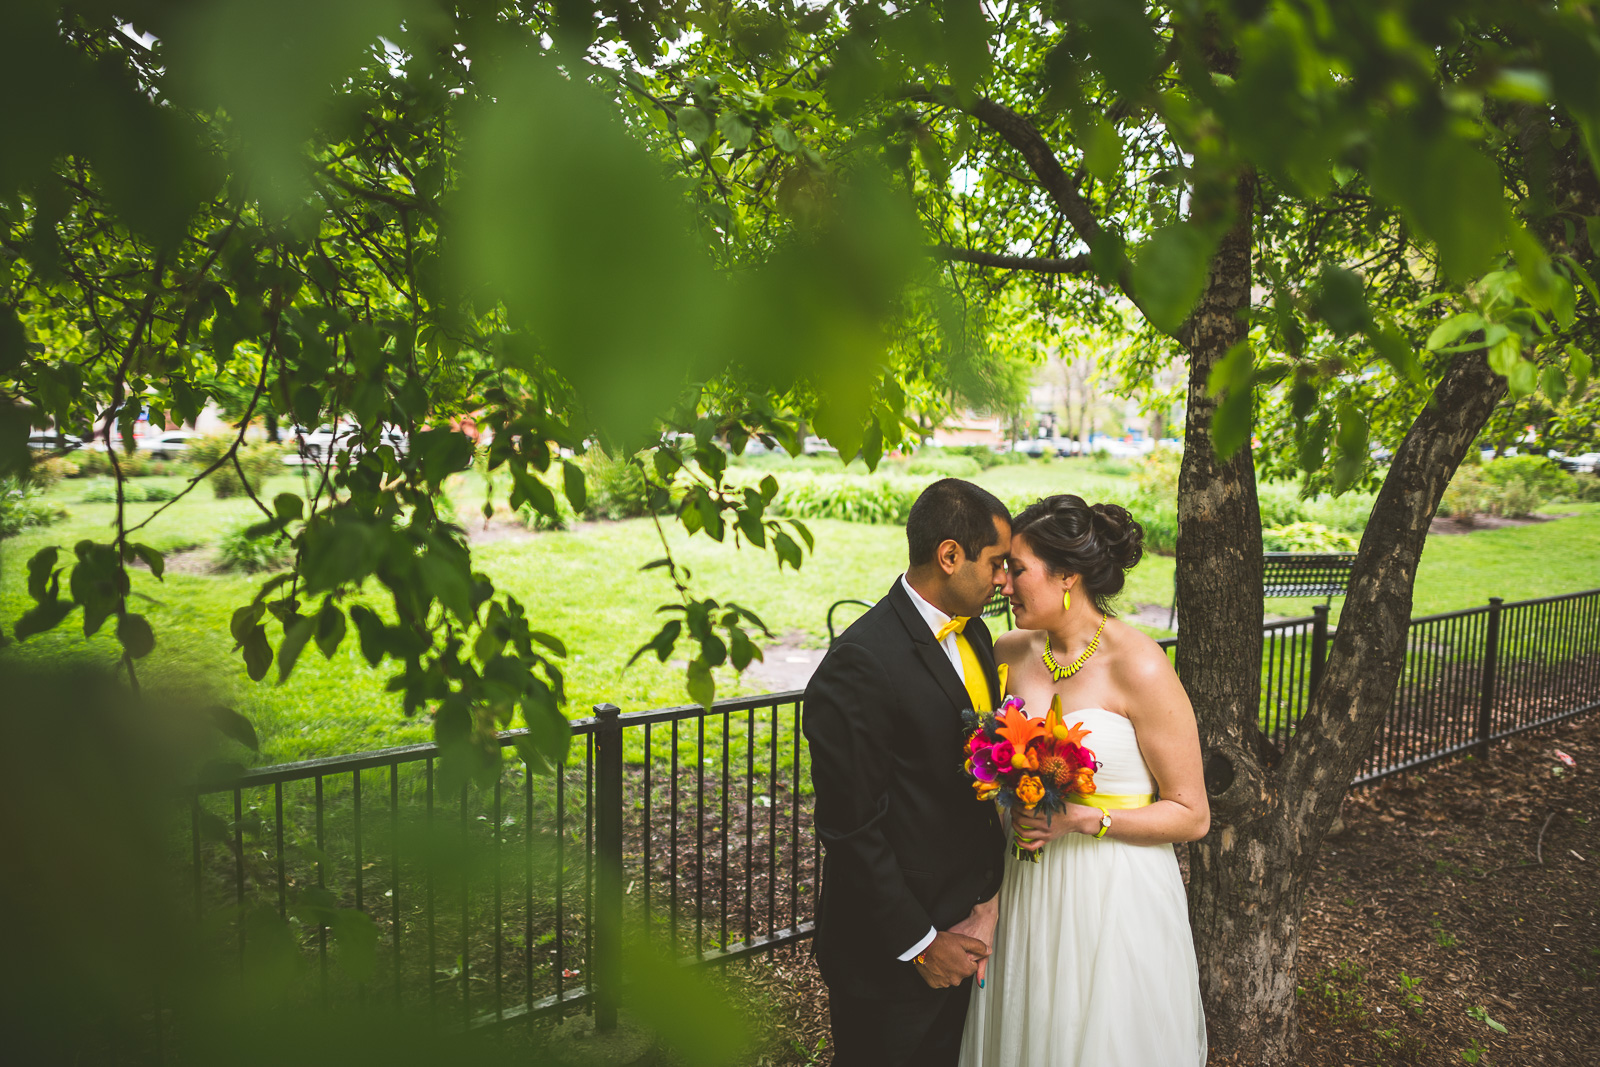 51 bride portraits with groom in park